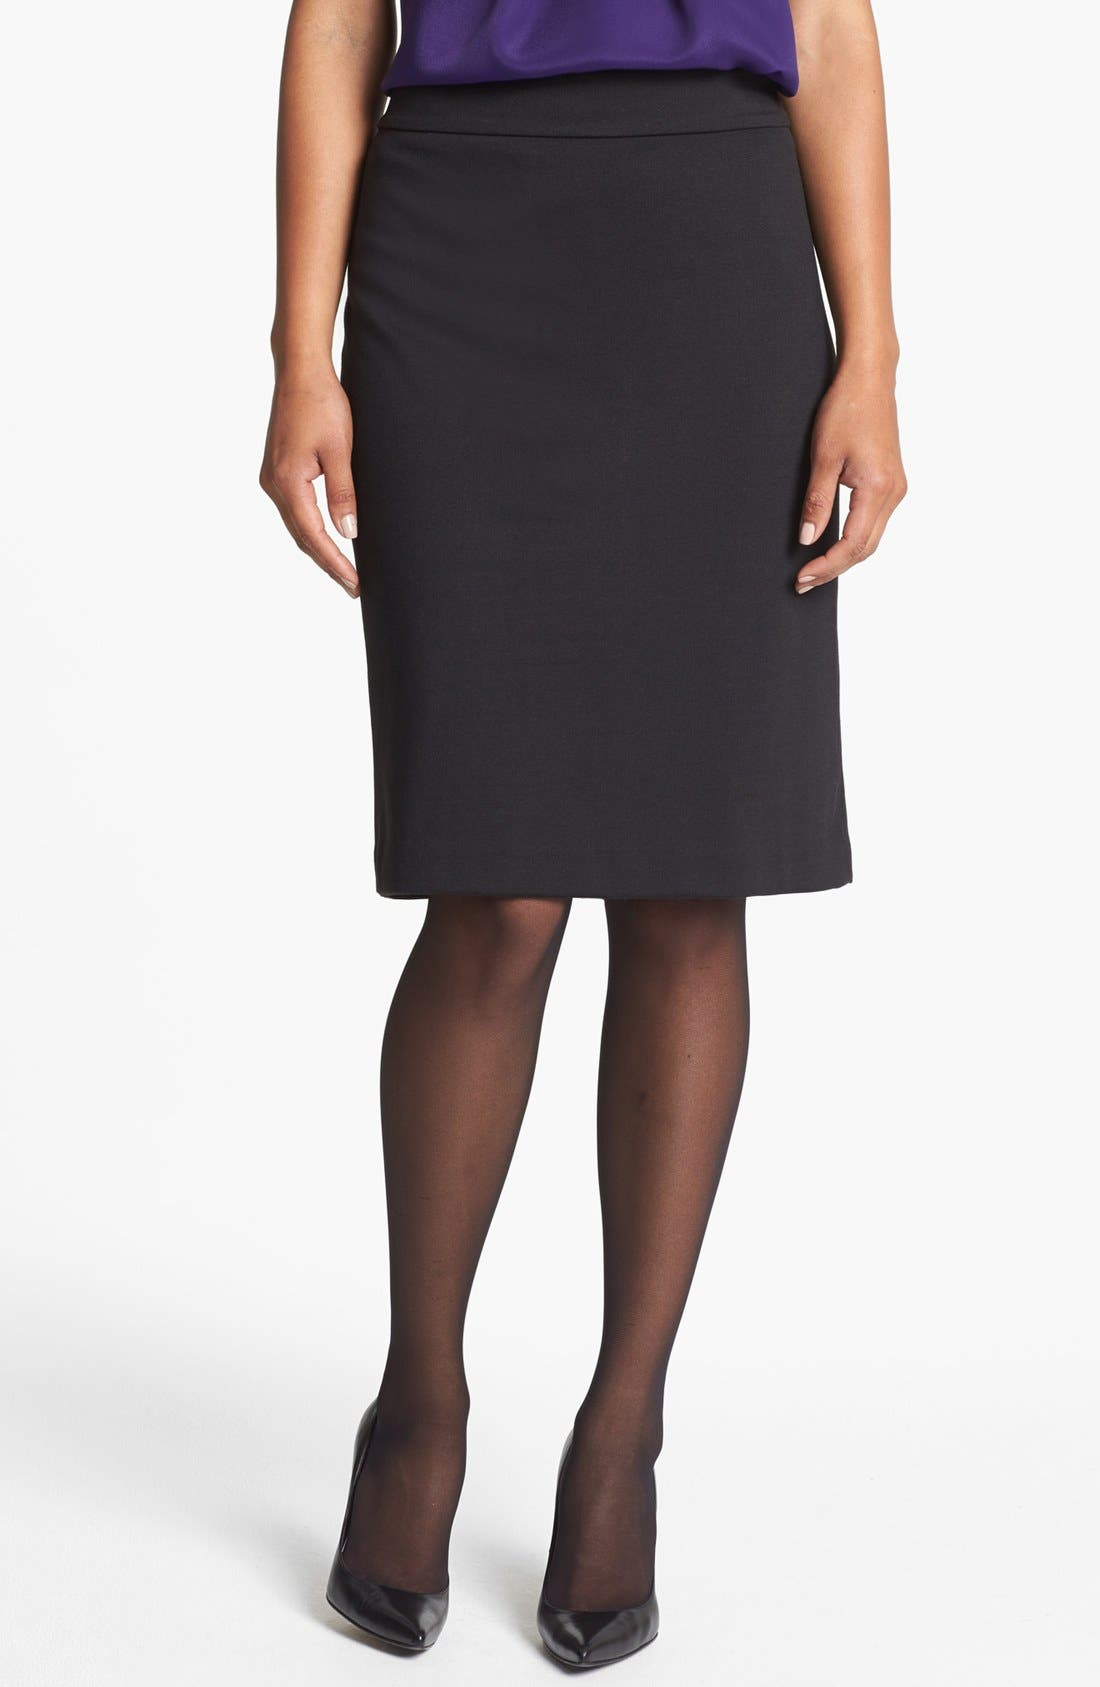 JONES NEW YORK 'Lucy' Ponte Knit Pencil Skirt, Main, color, 001